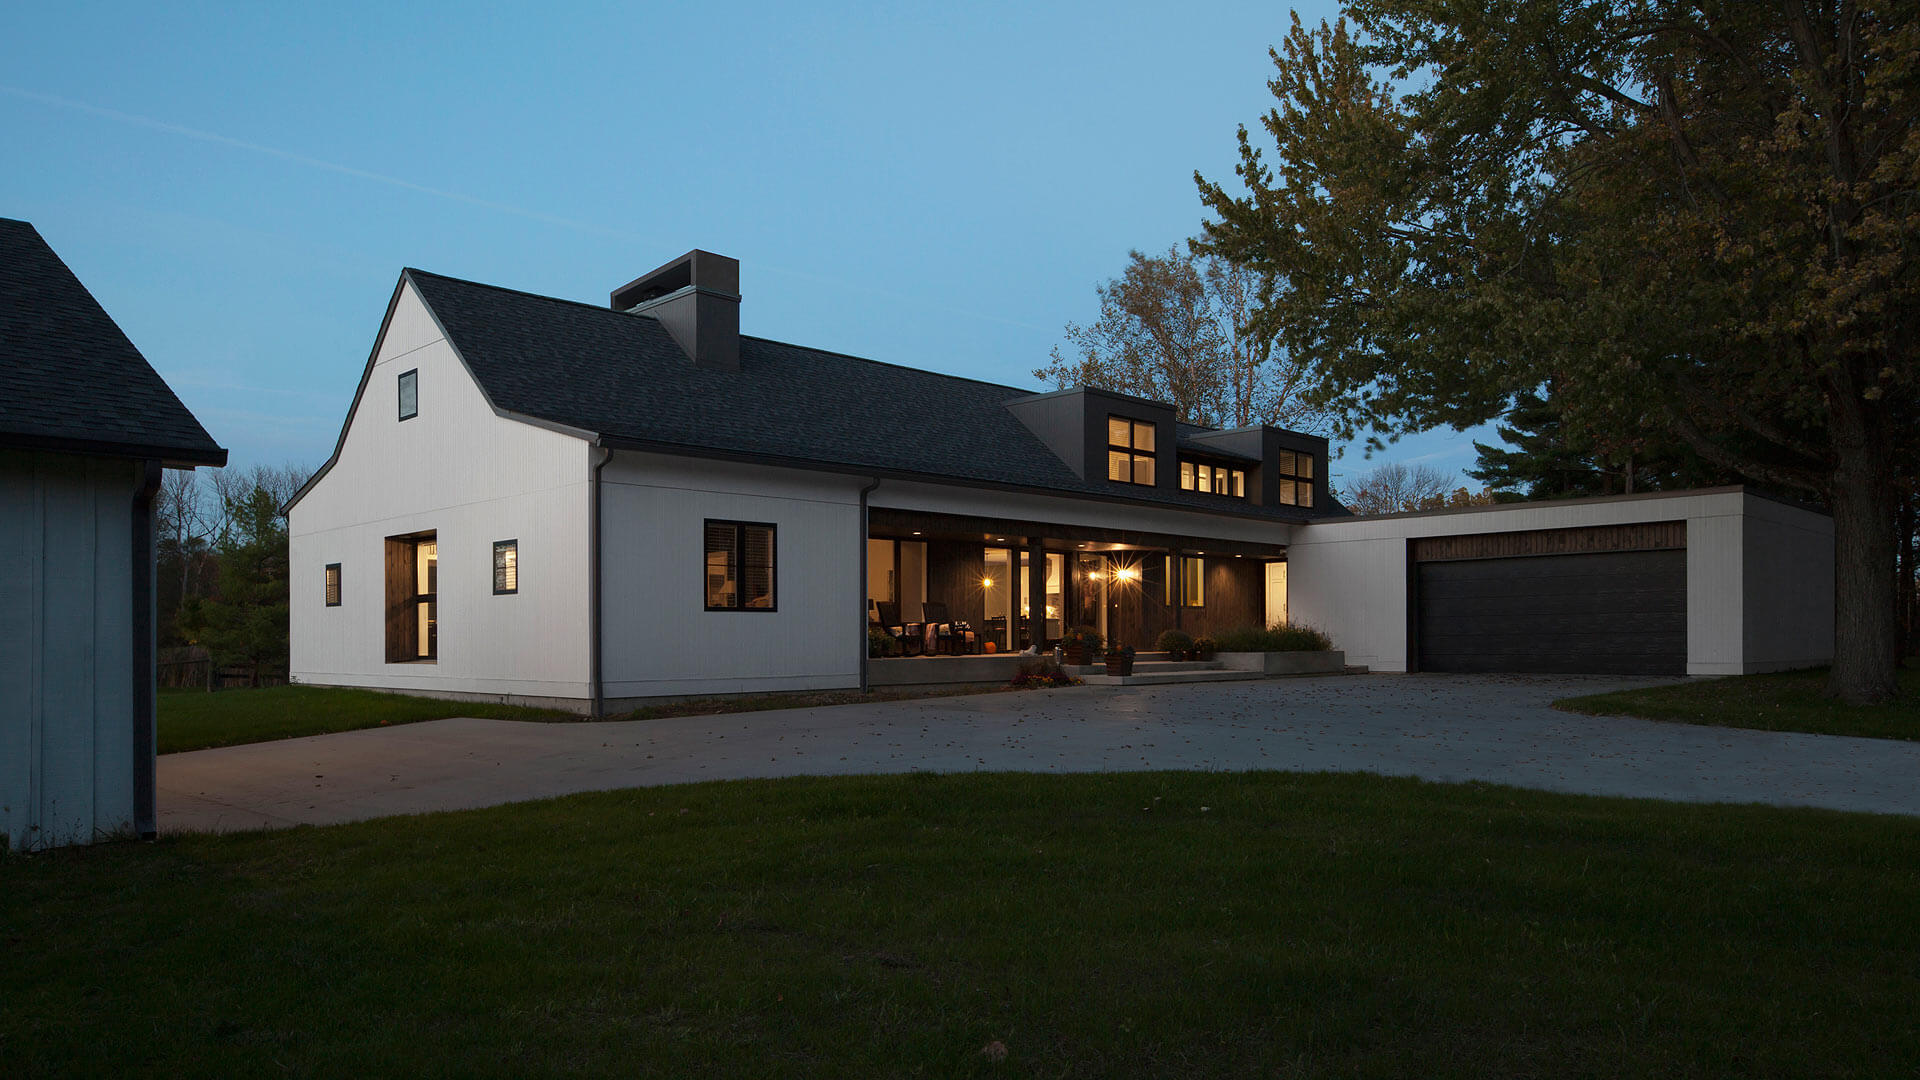 front porch, Halloween, deep inset windows, smooth garage door, black garage door, porch lighting, white siding, dawn, dormers, flat roofs, forest trees, fall, downspouts, black windows, large windows, giant windows, vertical siding, Exterior Elevation - Modern Farmhouse 2 - Zionsville - Indianapolis - HAUS Architecture For Modern Lifestyles, Christopher Short, Architect, AIA, NCARB, LEED AP BD&C